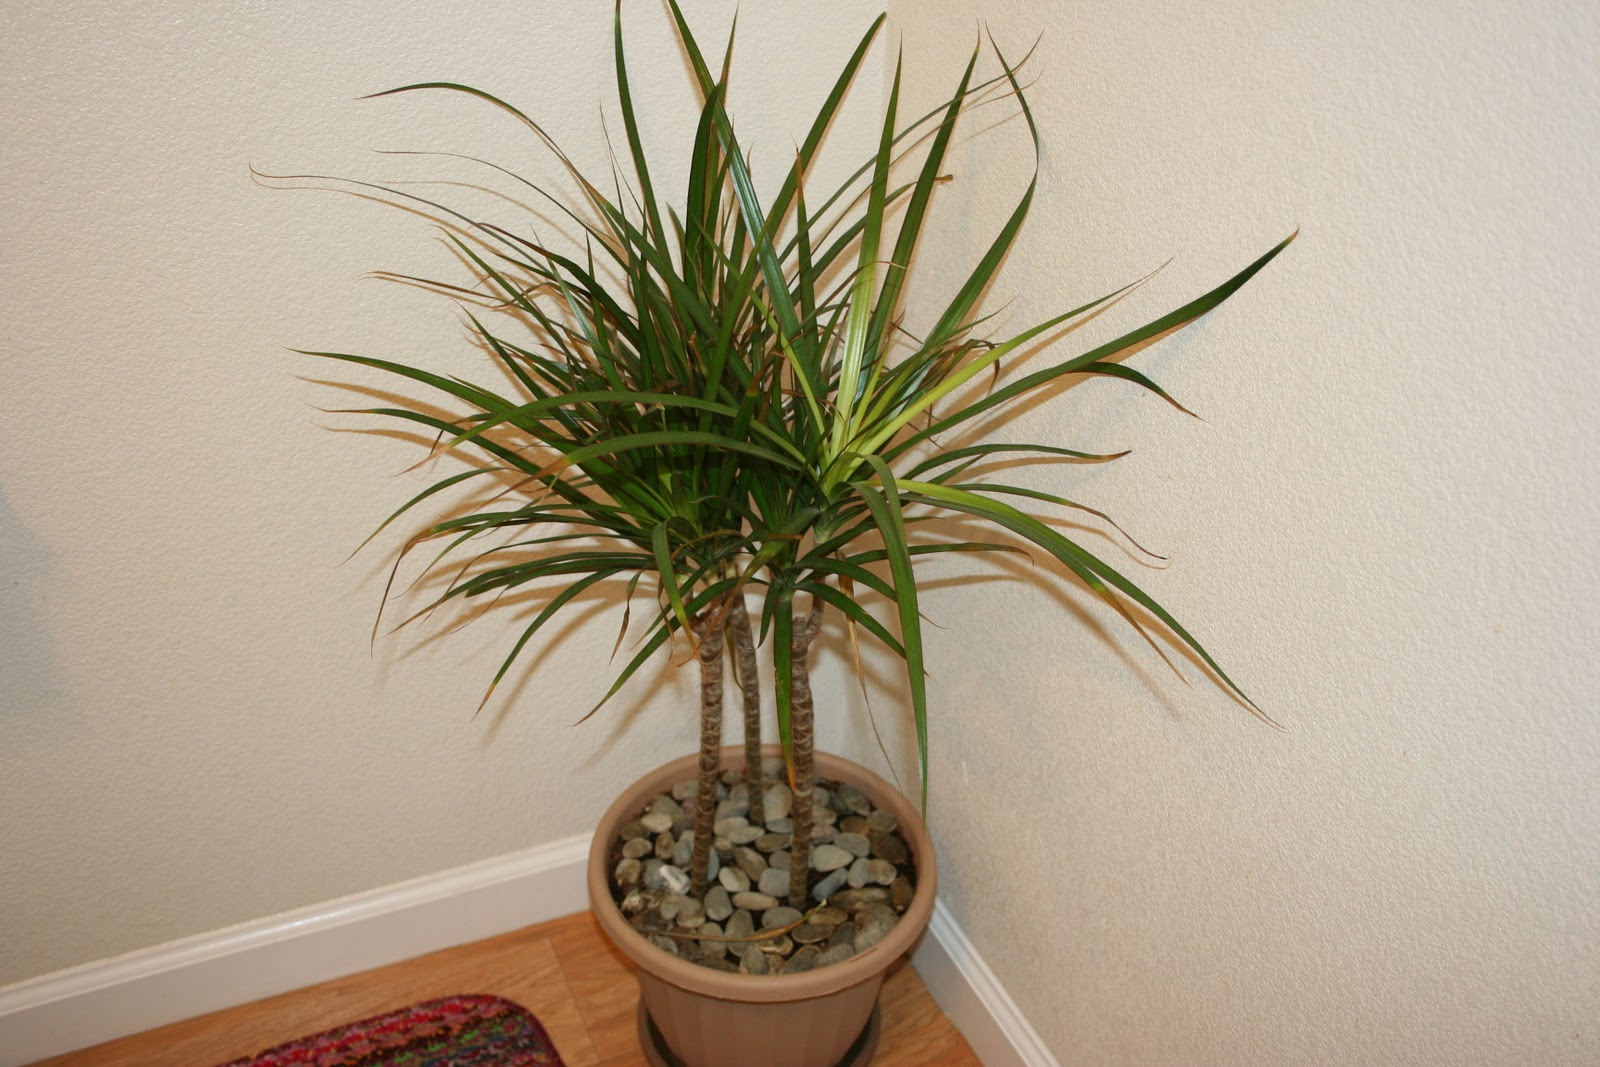 Life as it comes decorating with house plants Images of indoor plants